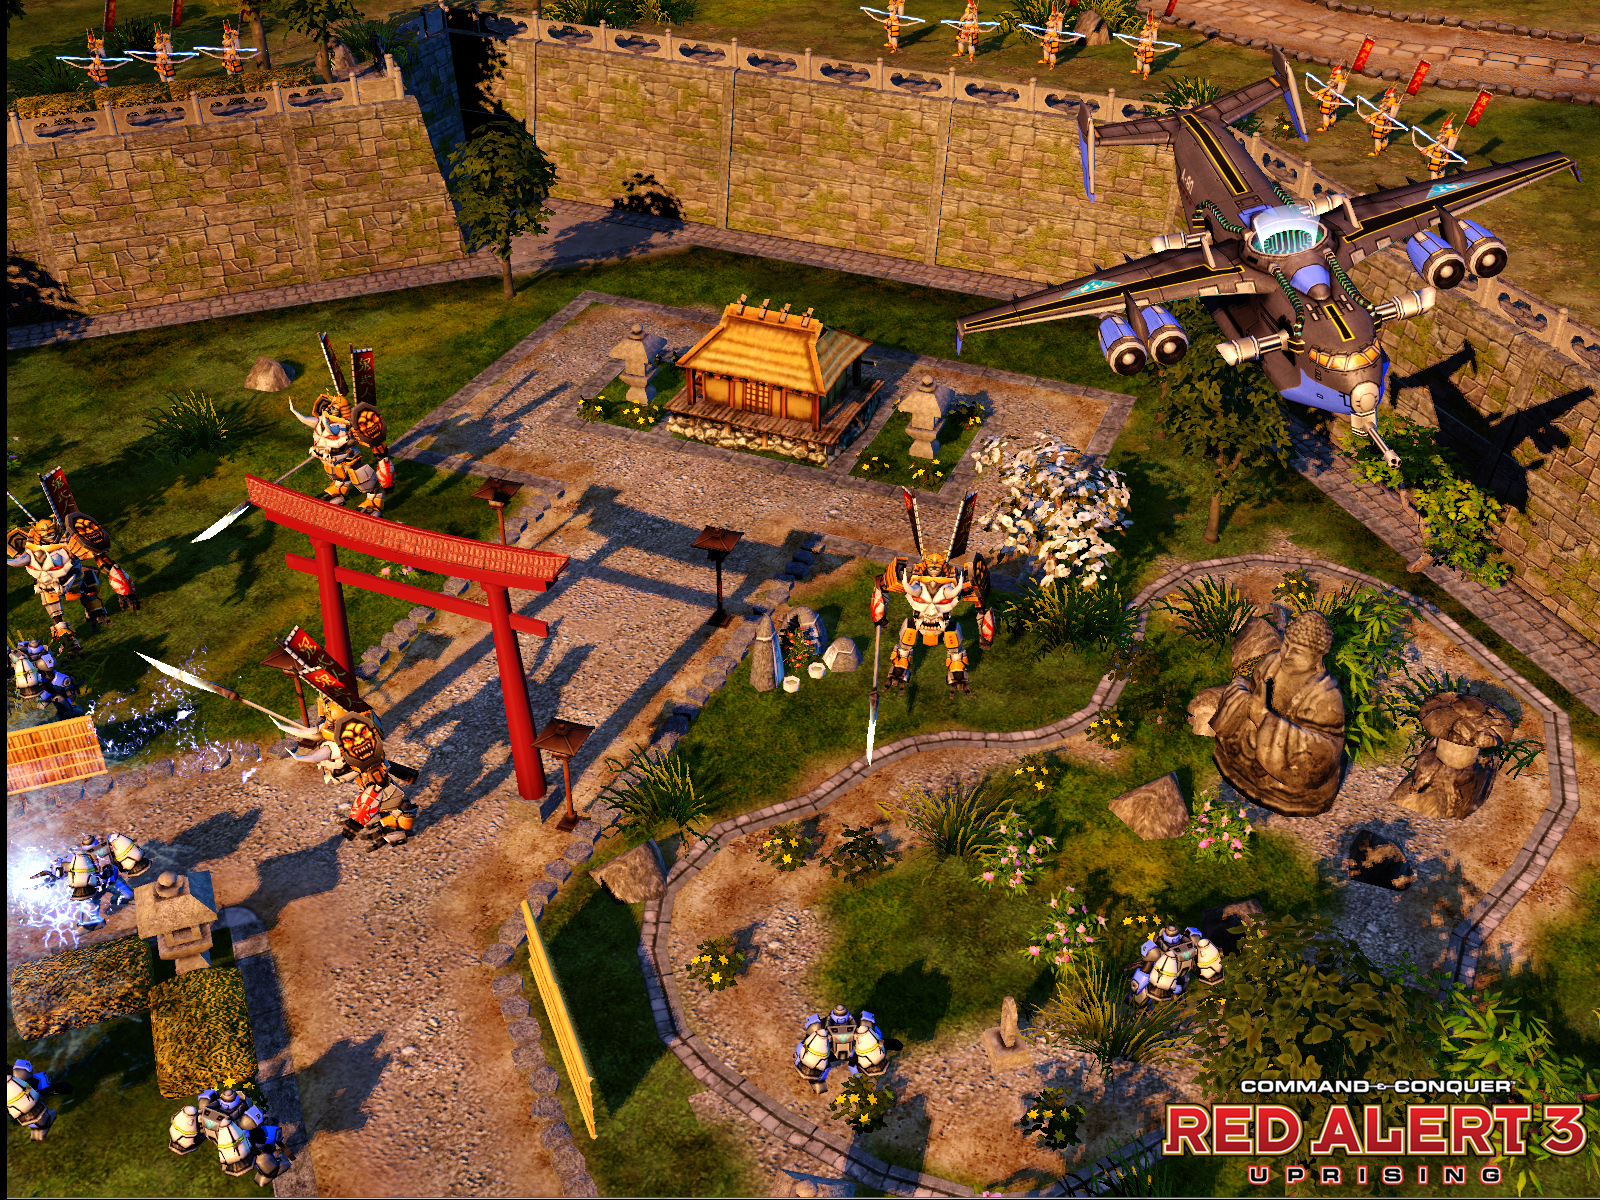 How to download red alert 3 uprising full version for free pc.